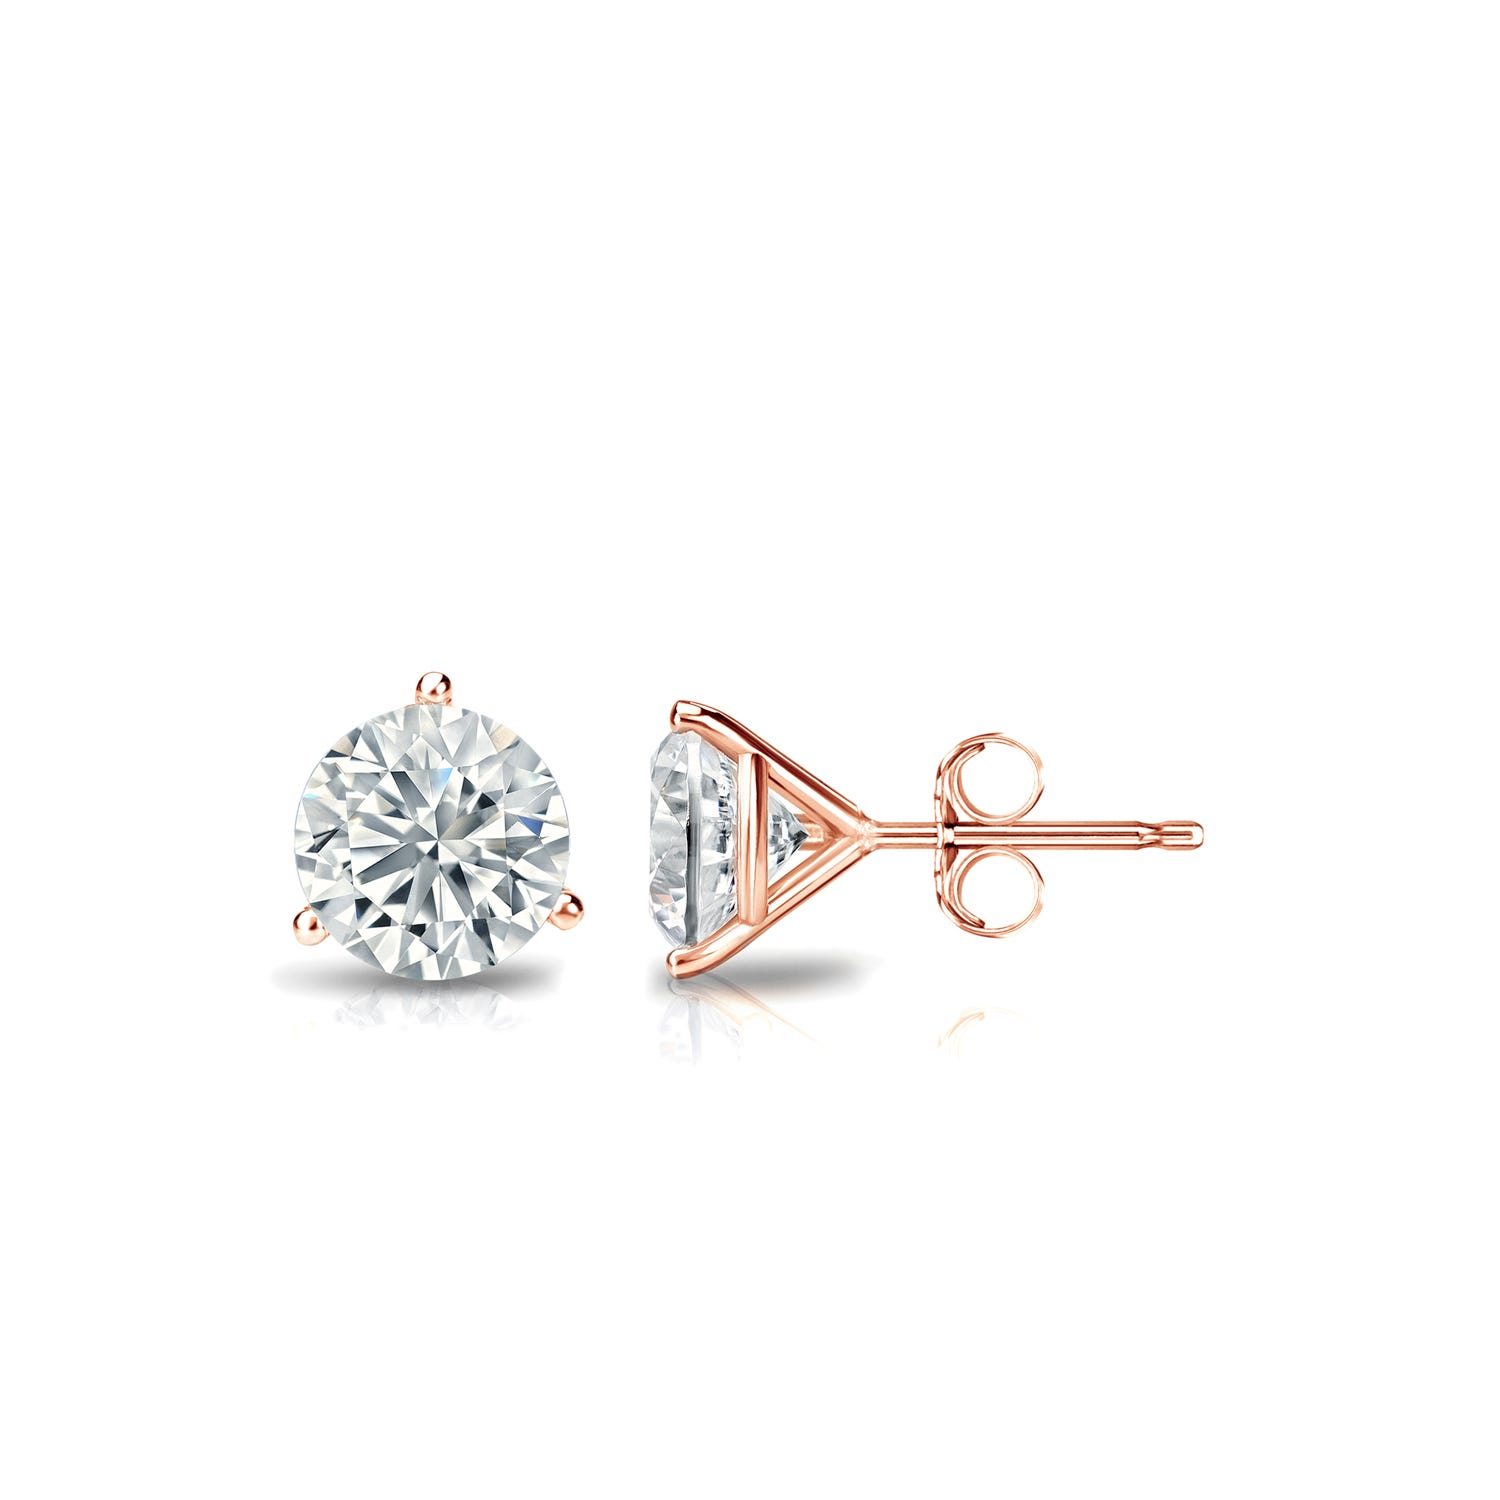 5/8 CTTW Round Diamond Solitaire Stud Earrings IJ SI1 in 14K Rose Gold 3-Prong Setting